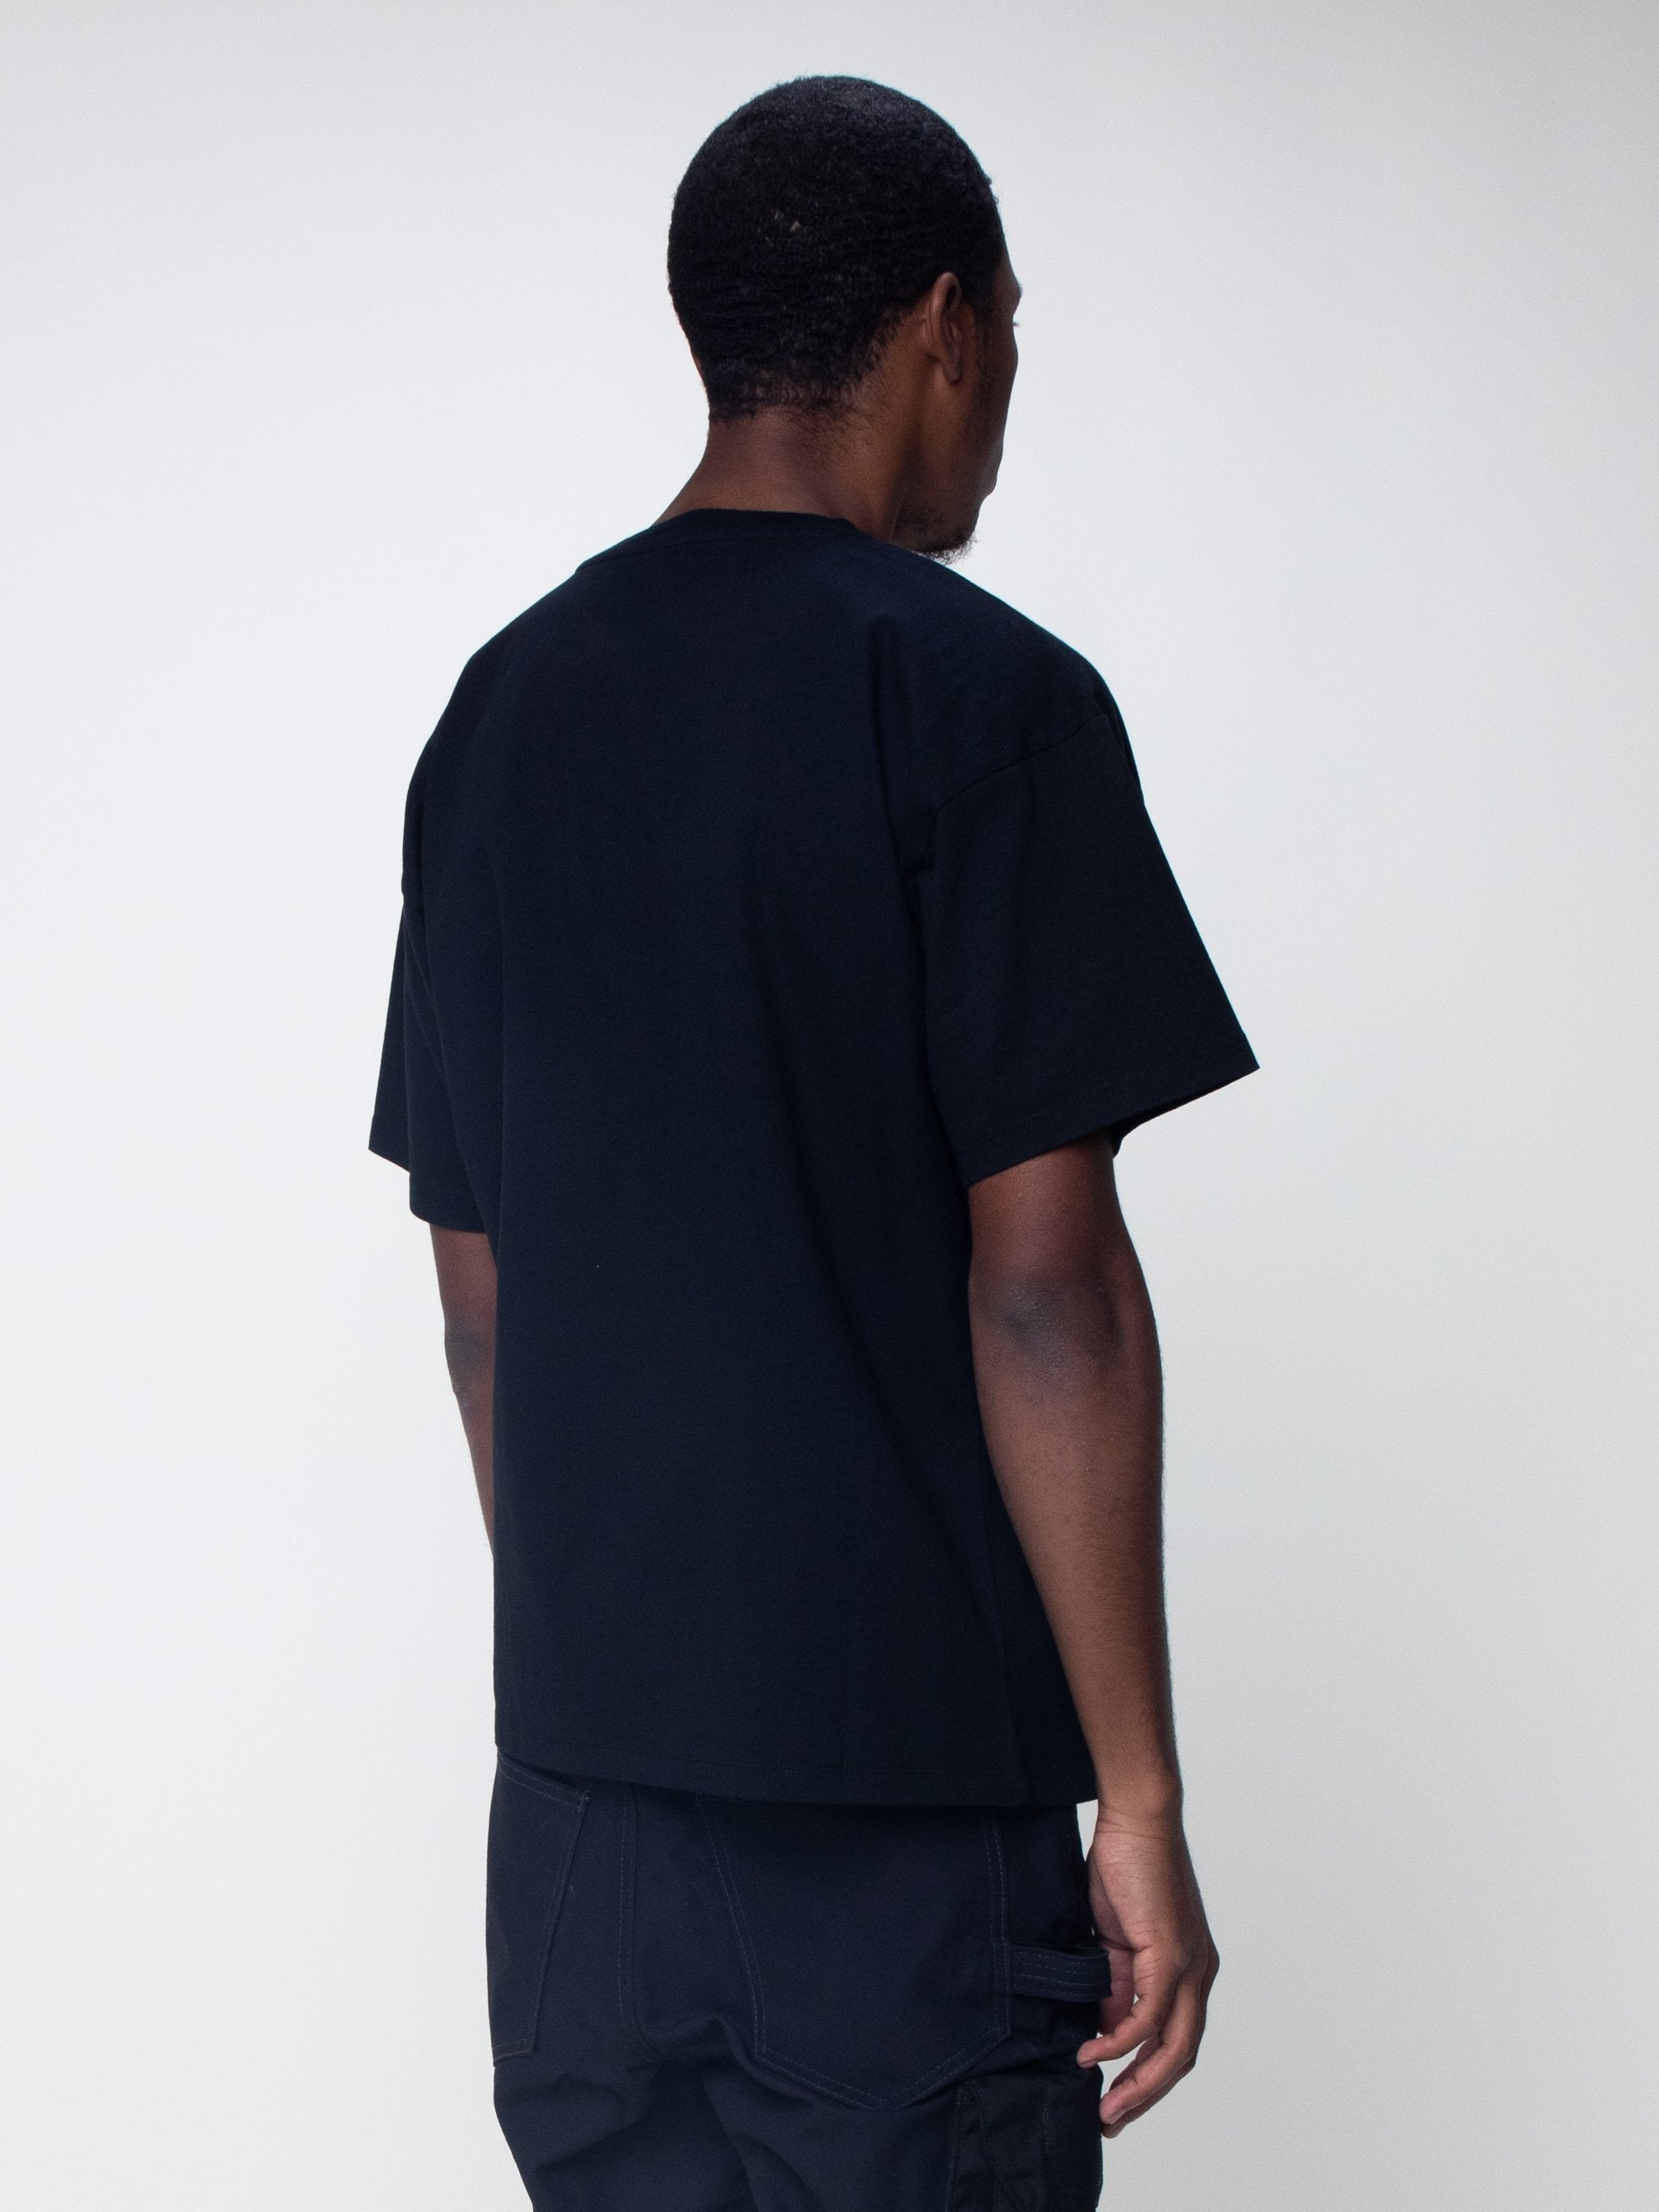 Black Rassvet T-Shirt 5